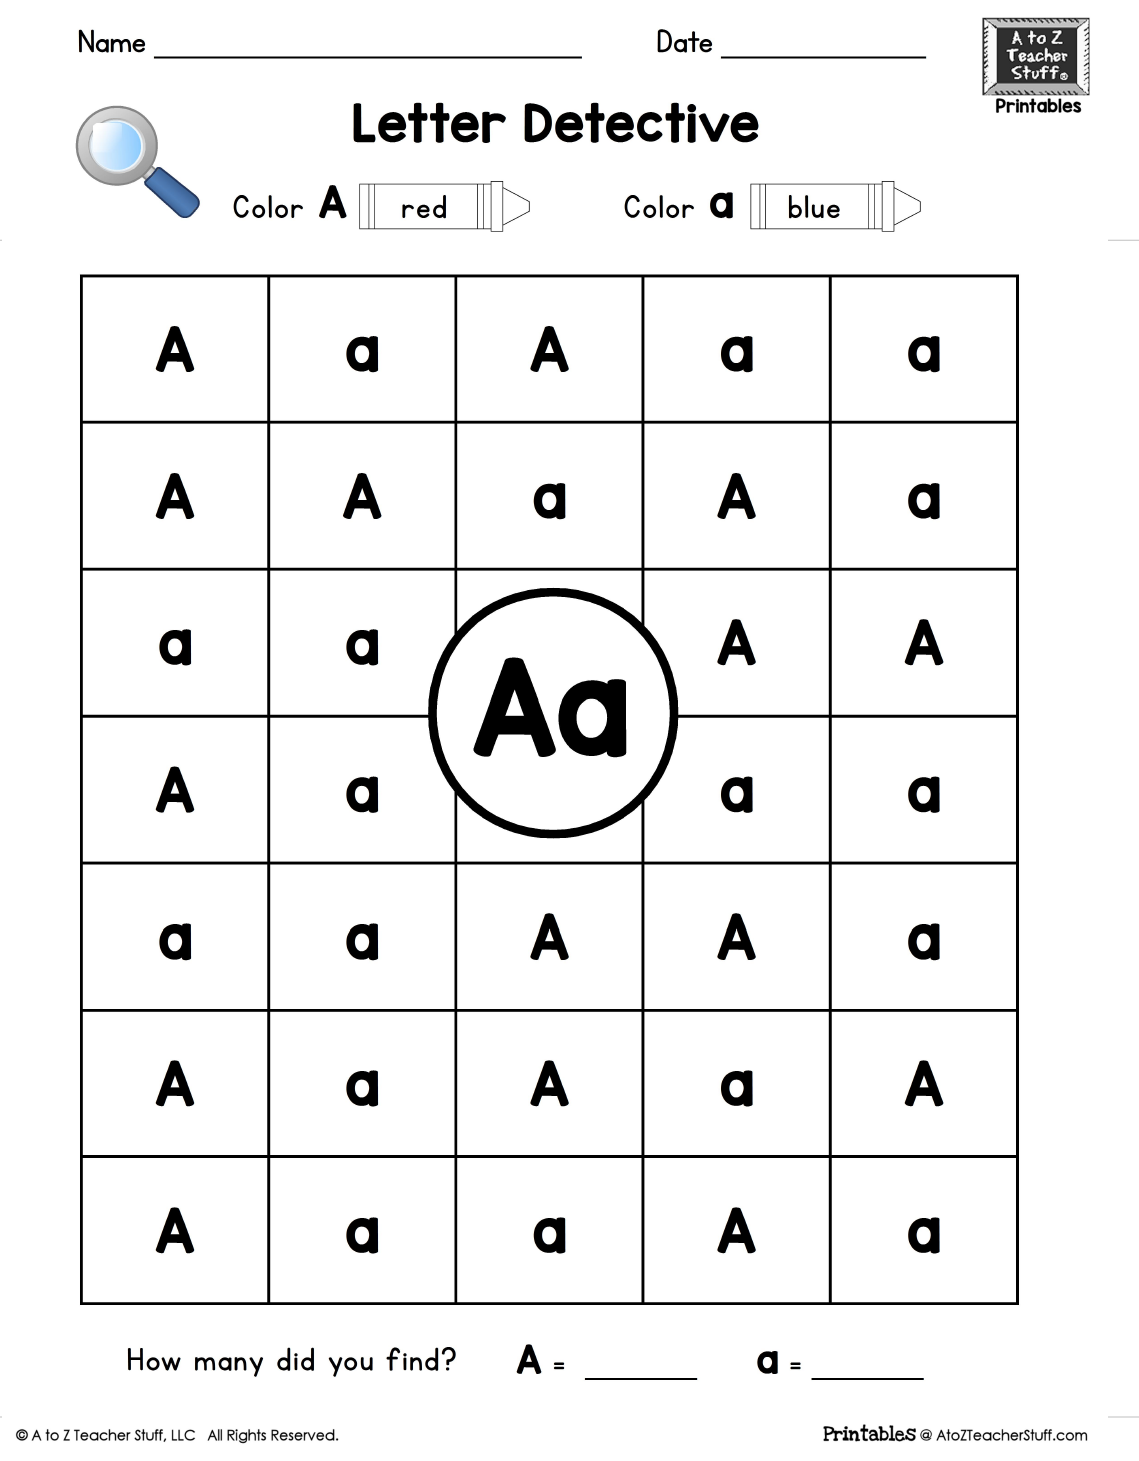 worksheet Lowercase A Worksheet letter a detective uppercase lowercase visual aa free printable for and discrimination